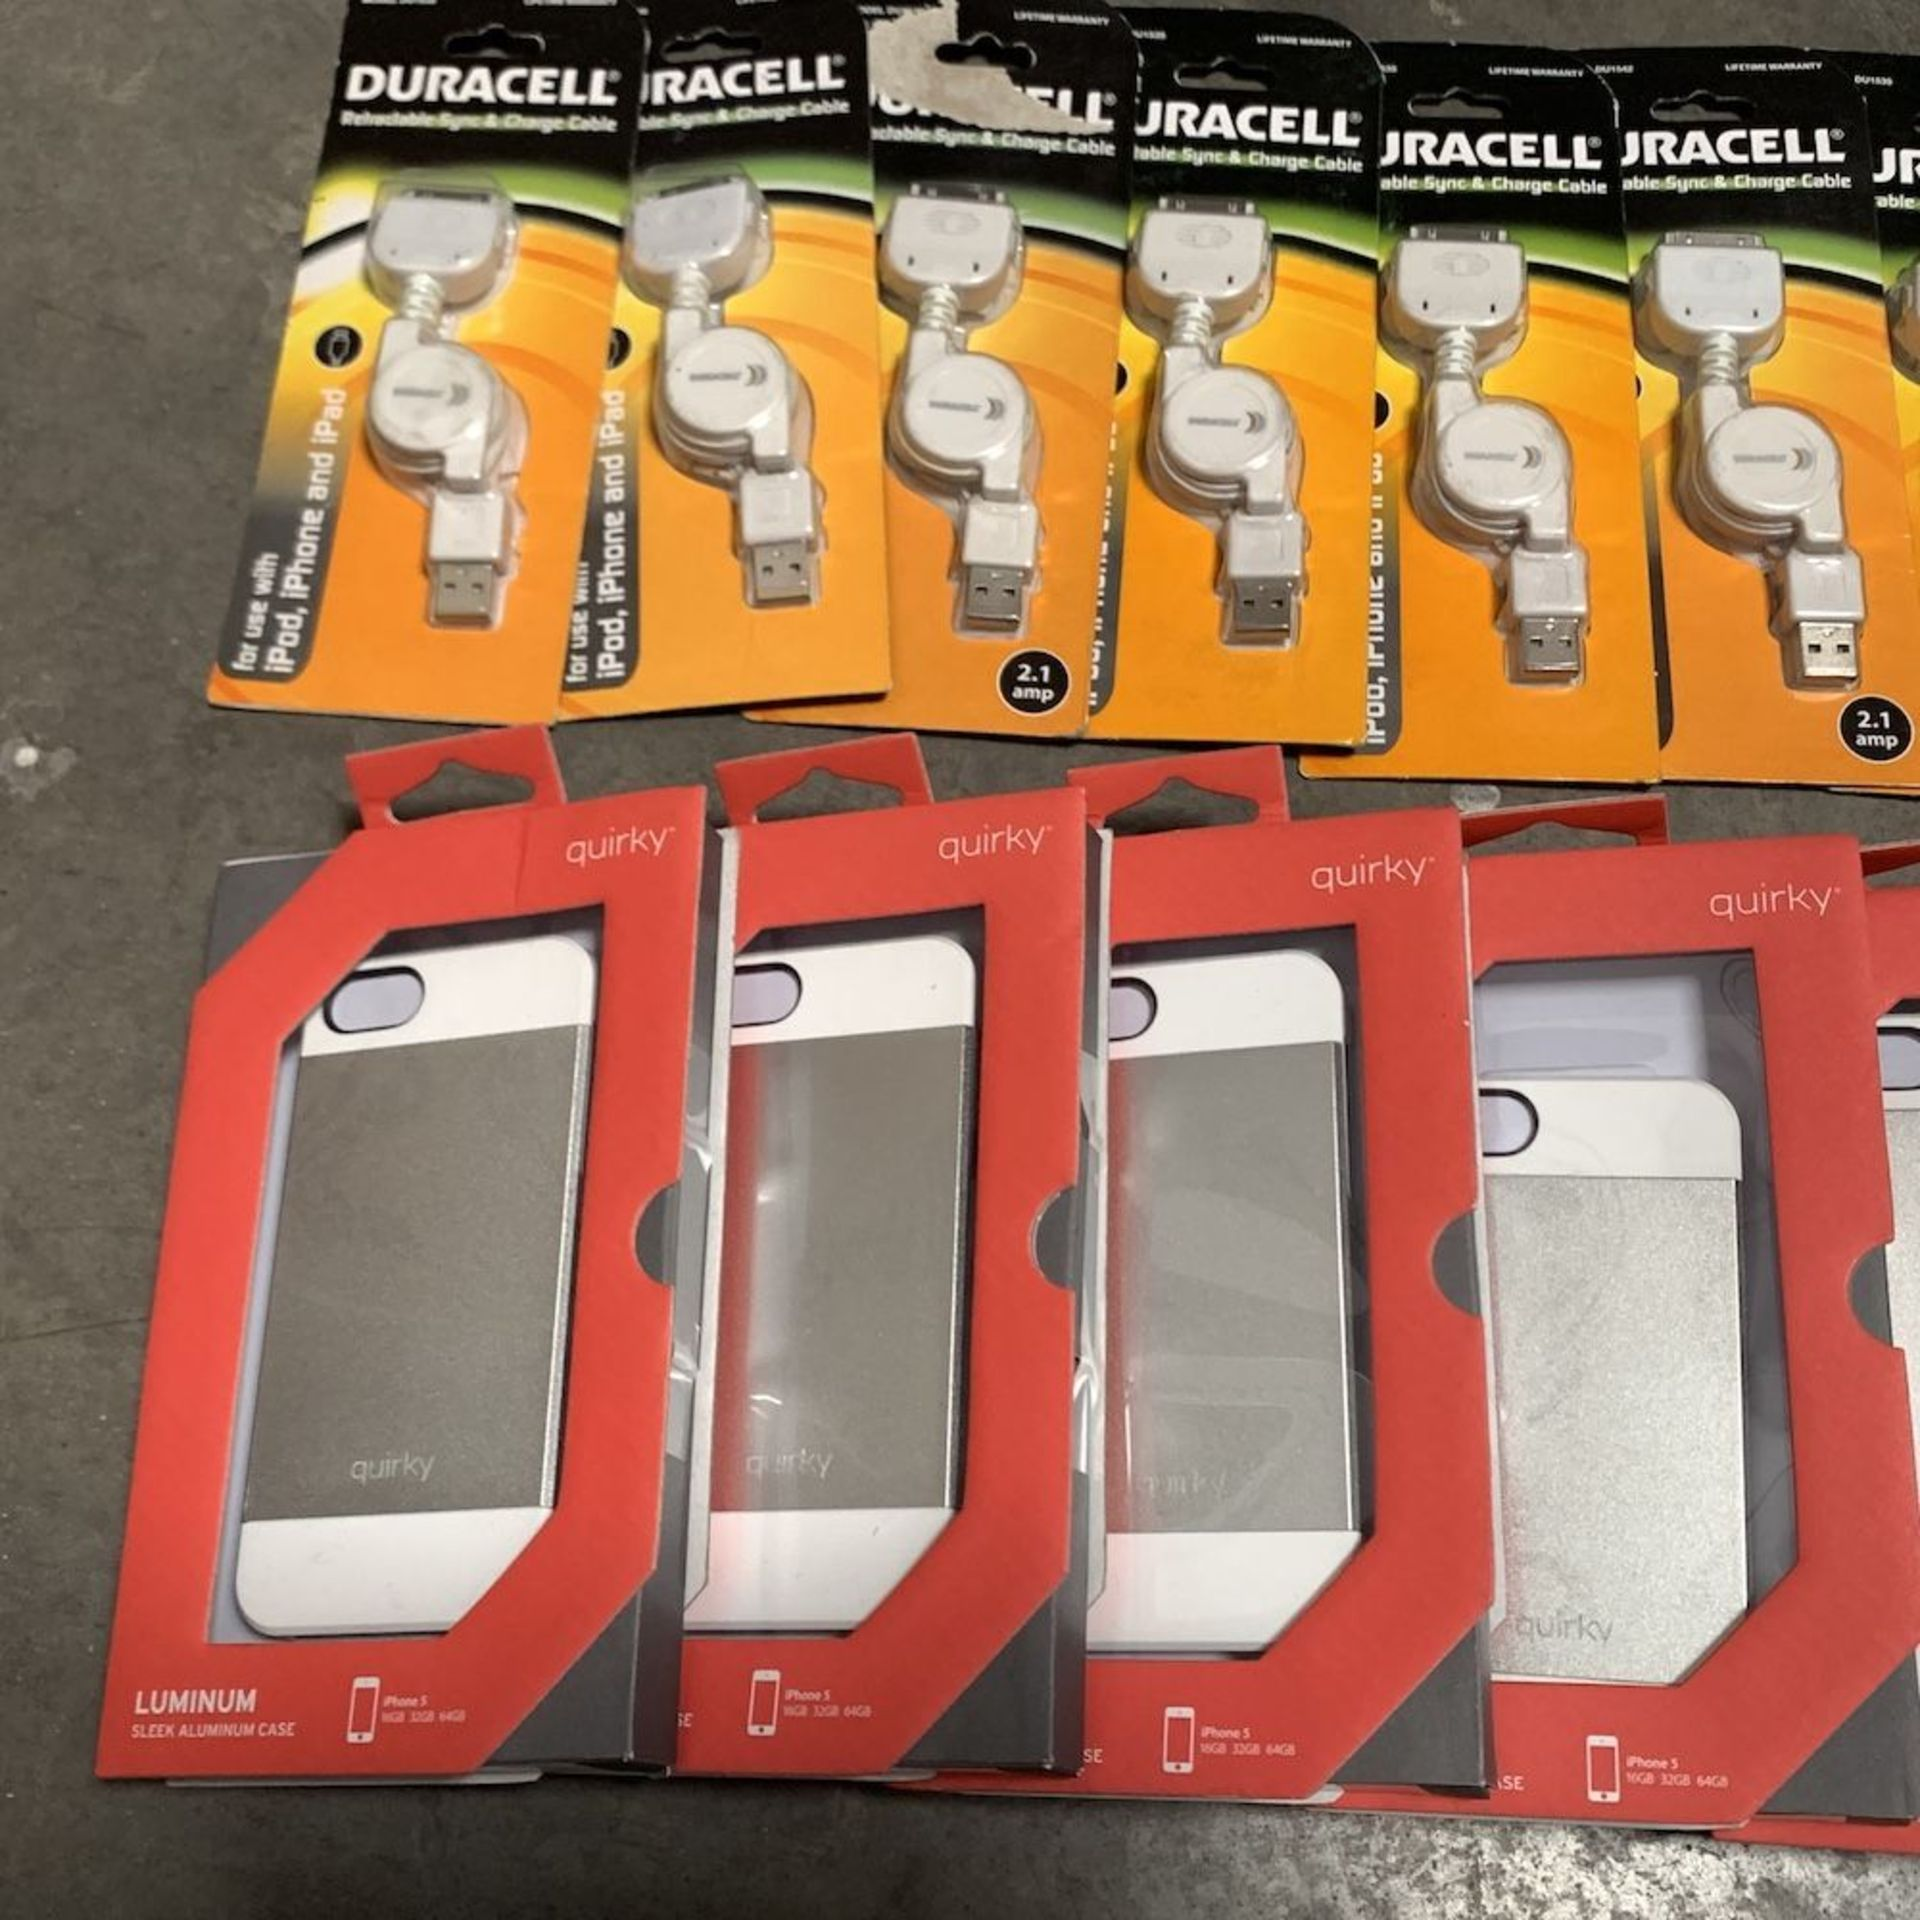 Lot 193 - Lot of 22 iPhone Cases, Chargers, and Phone Armband Accessories